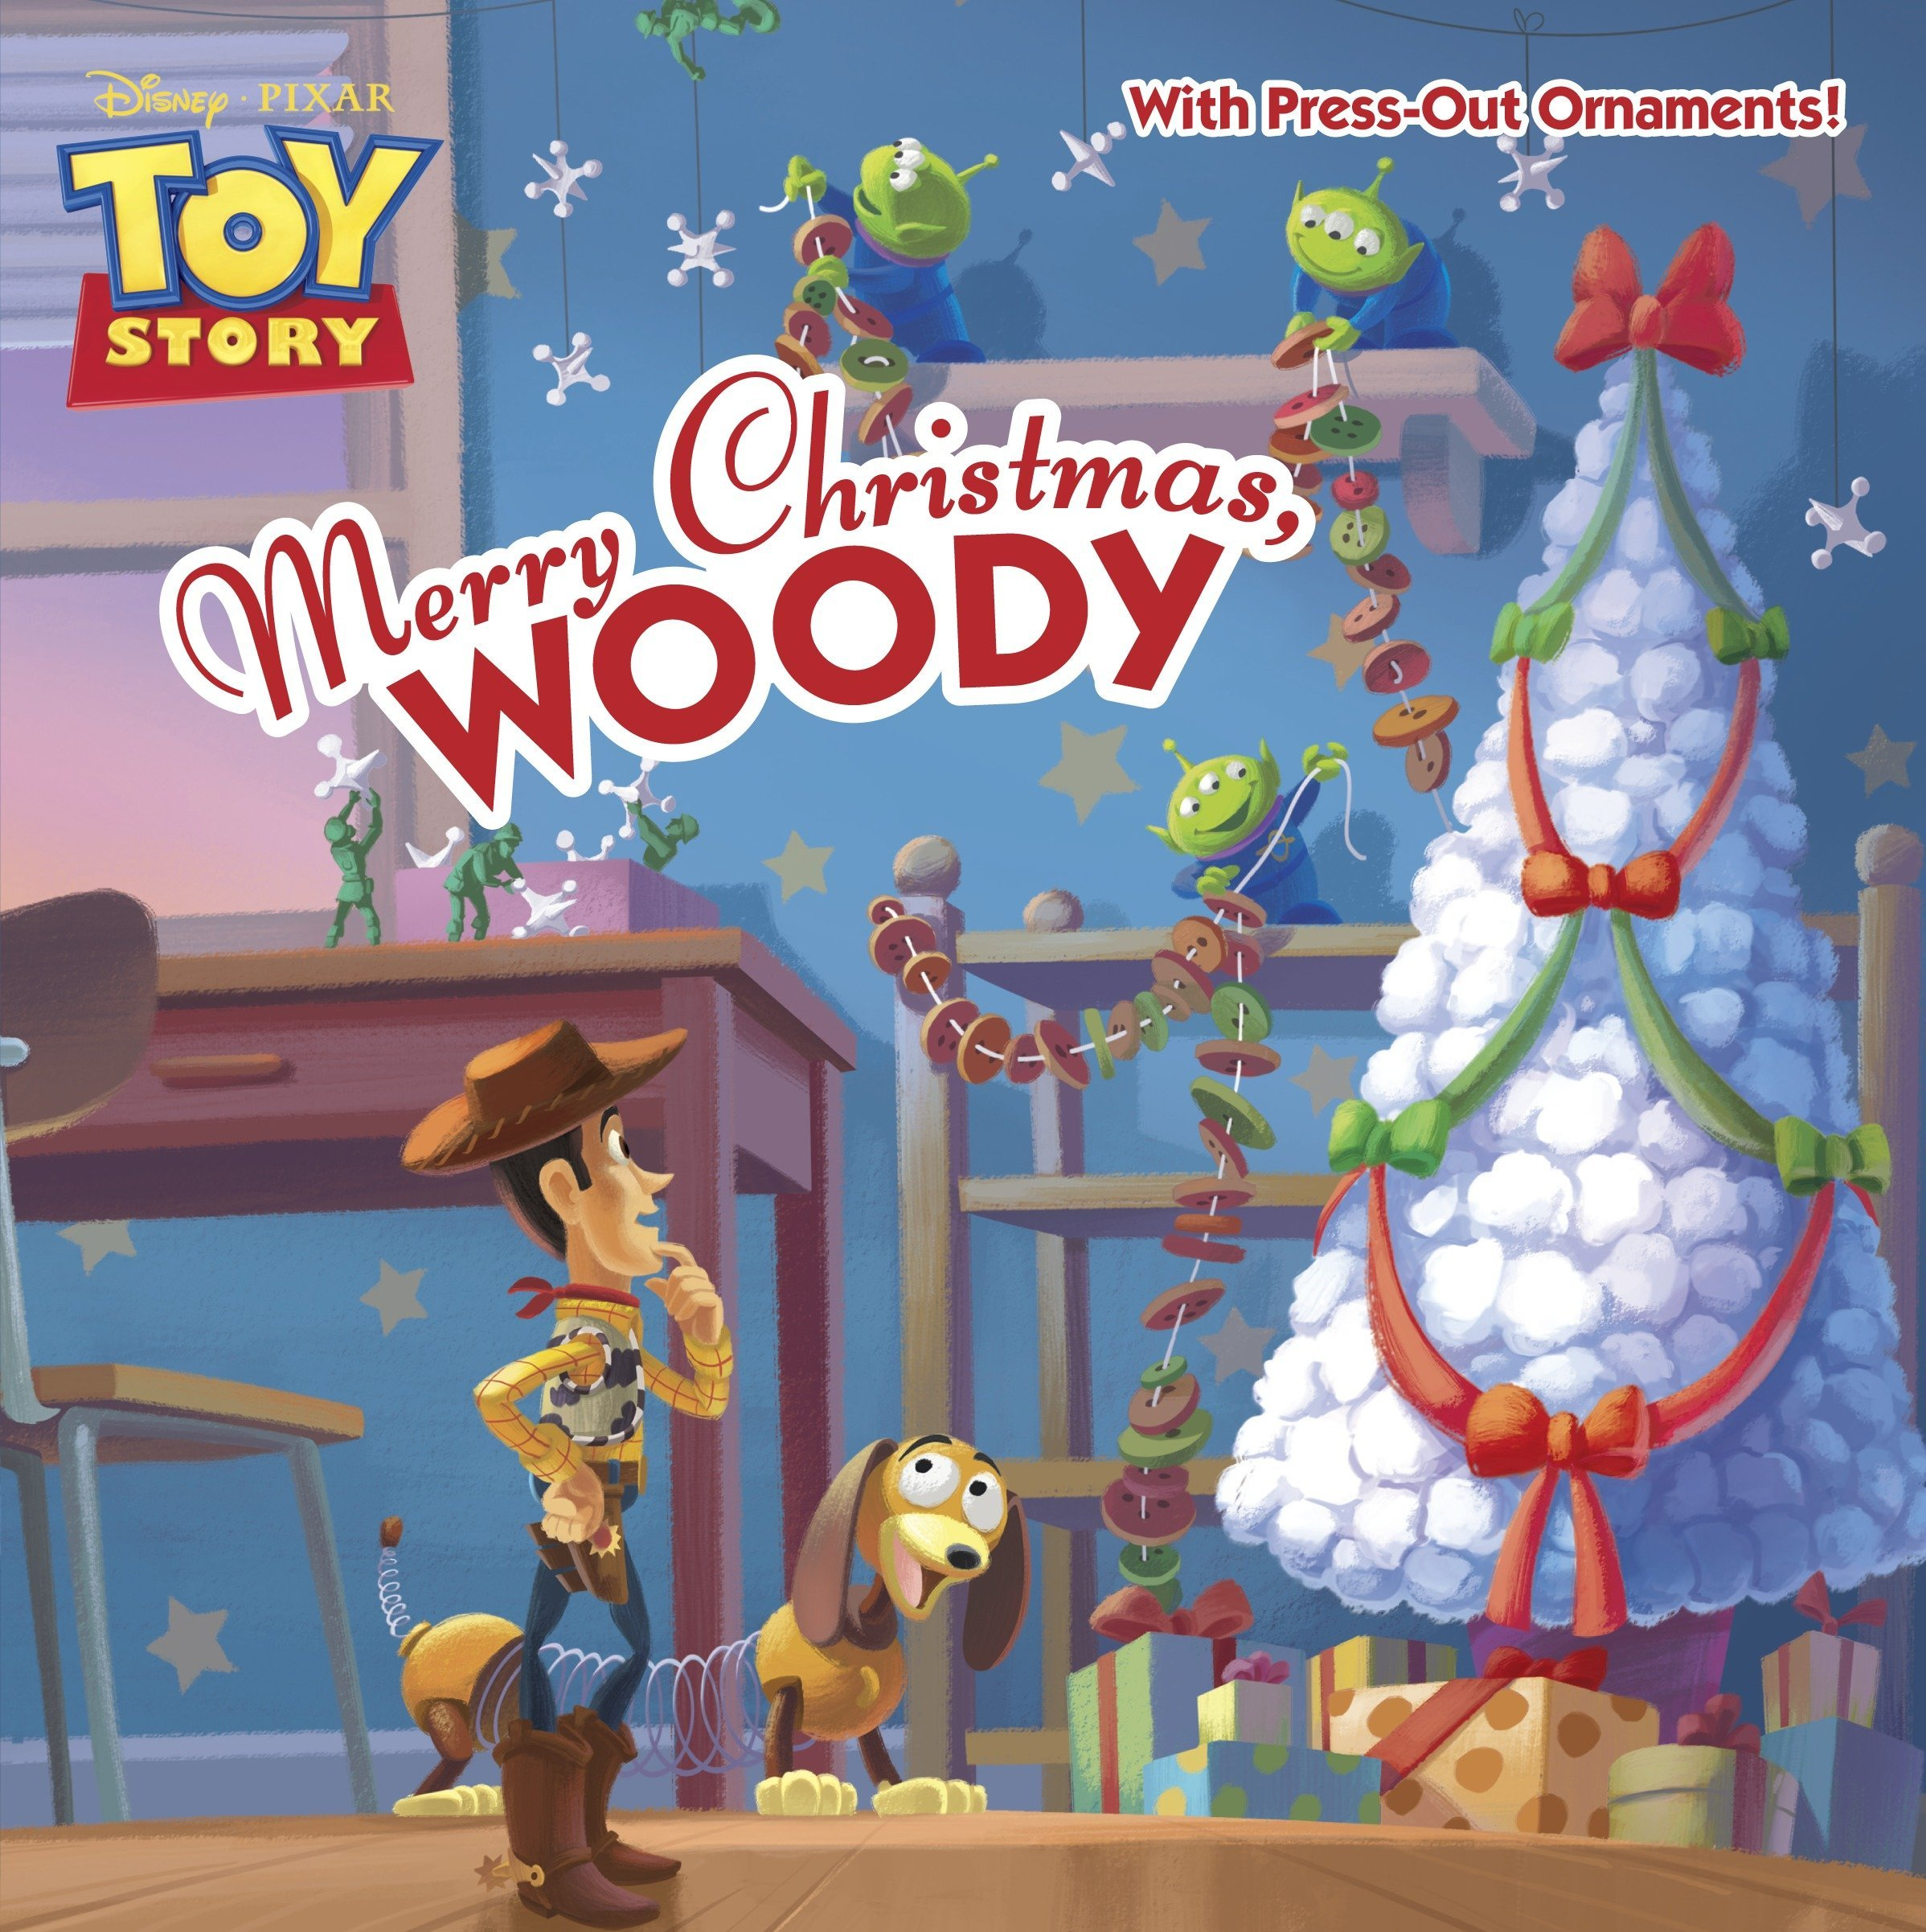 Story Of Christmas.Merry Christmas Woody Disney Pixar Toy Story Pictureback